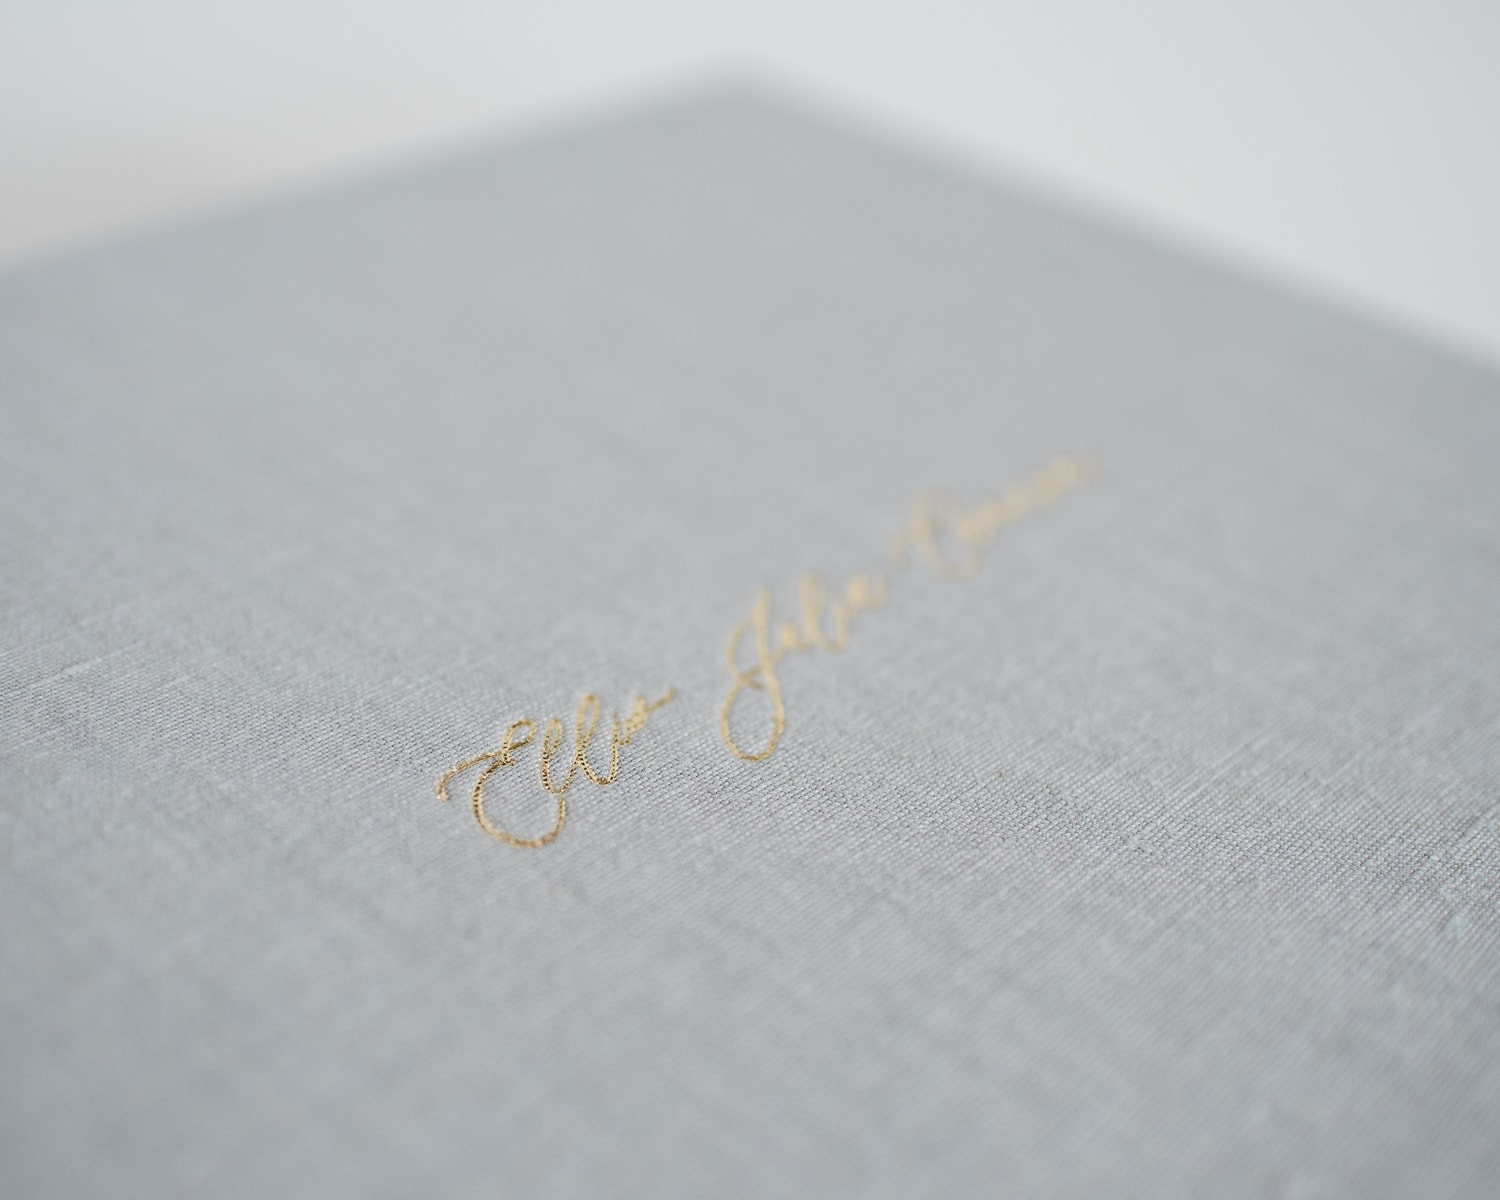 Gold foil embossing on matted print box